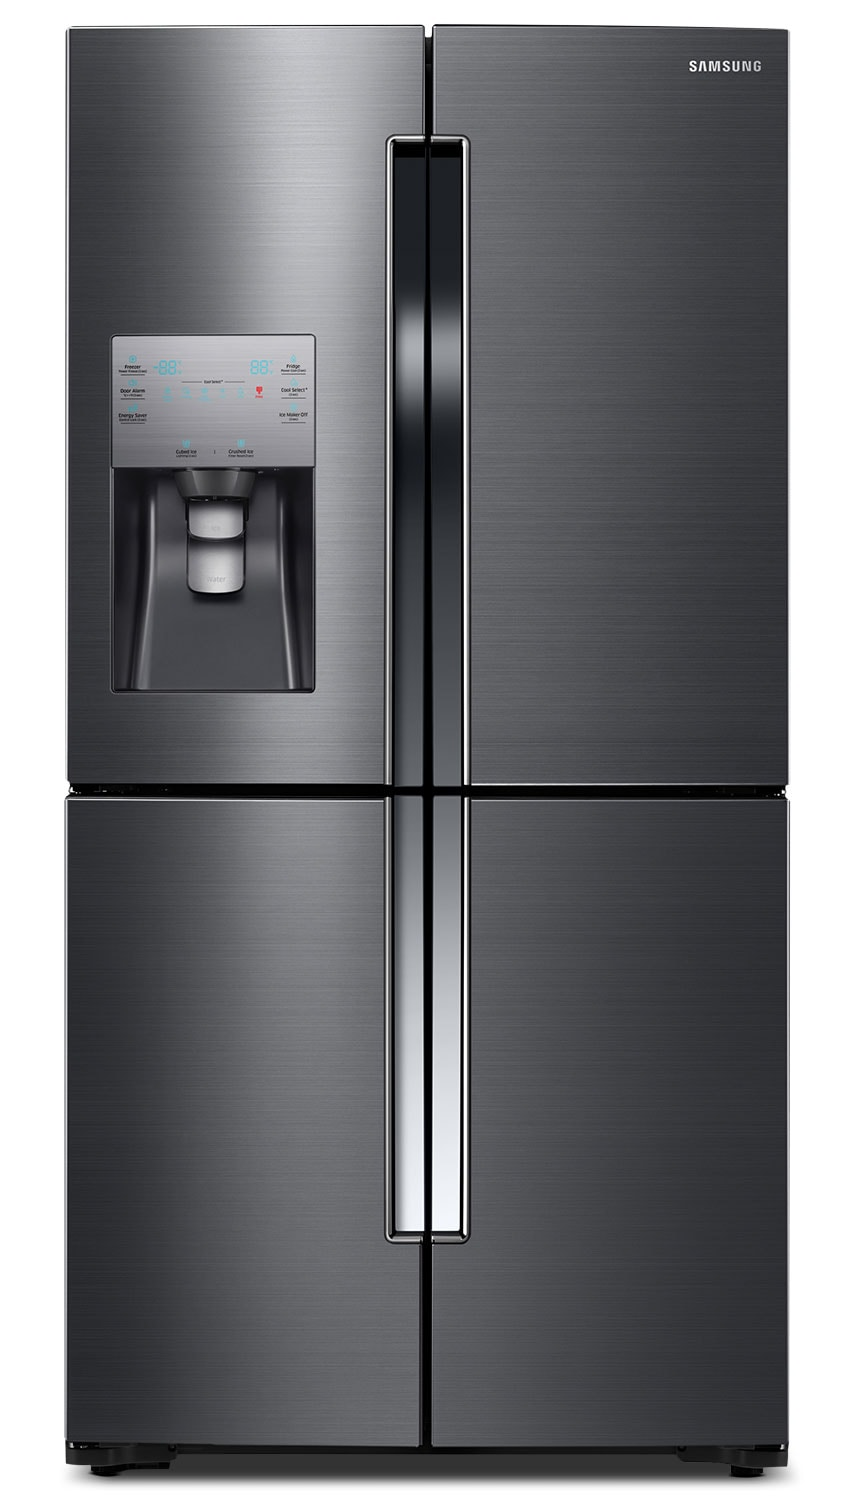 Samsung 22.5 Cu. Ft. French-Door Refrigerator – RF23J9011SG/AA